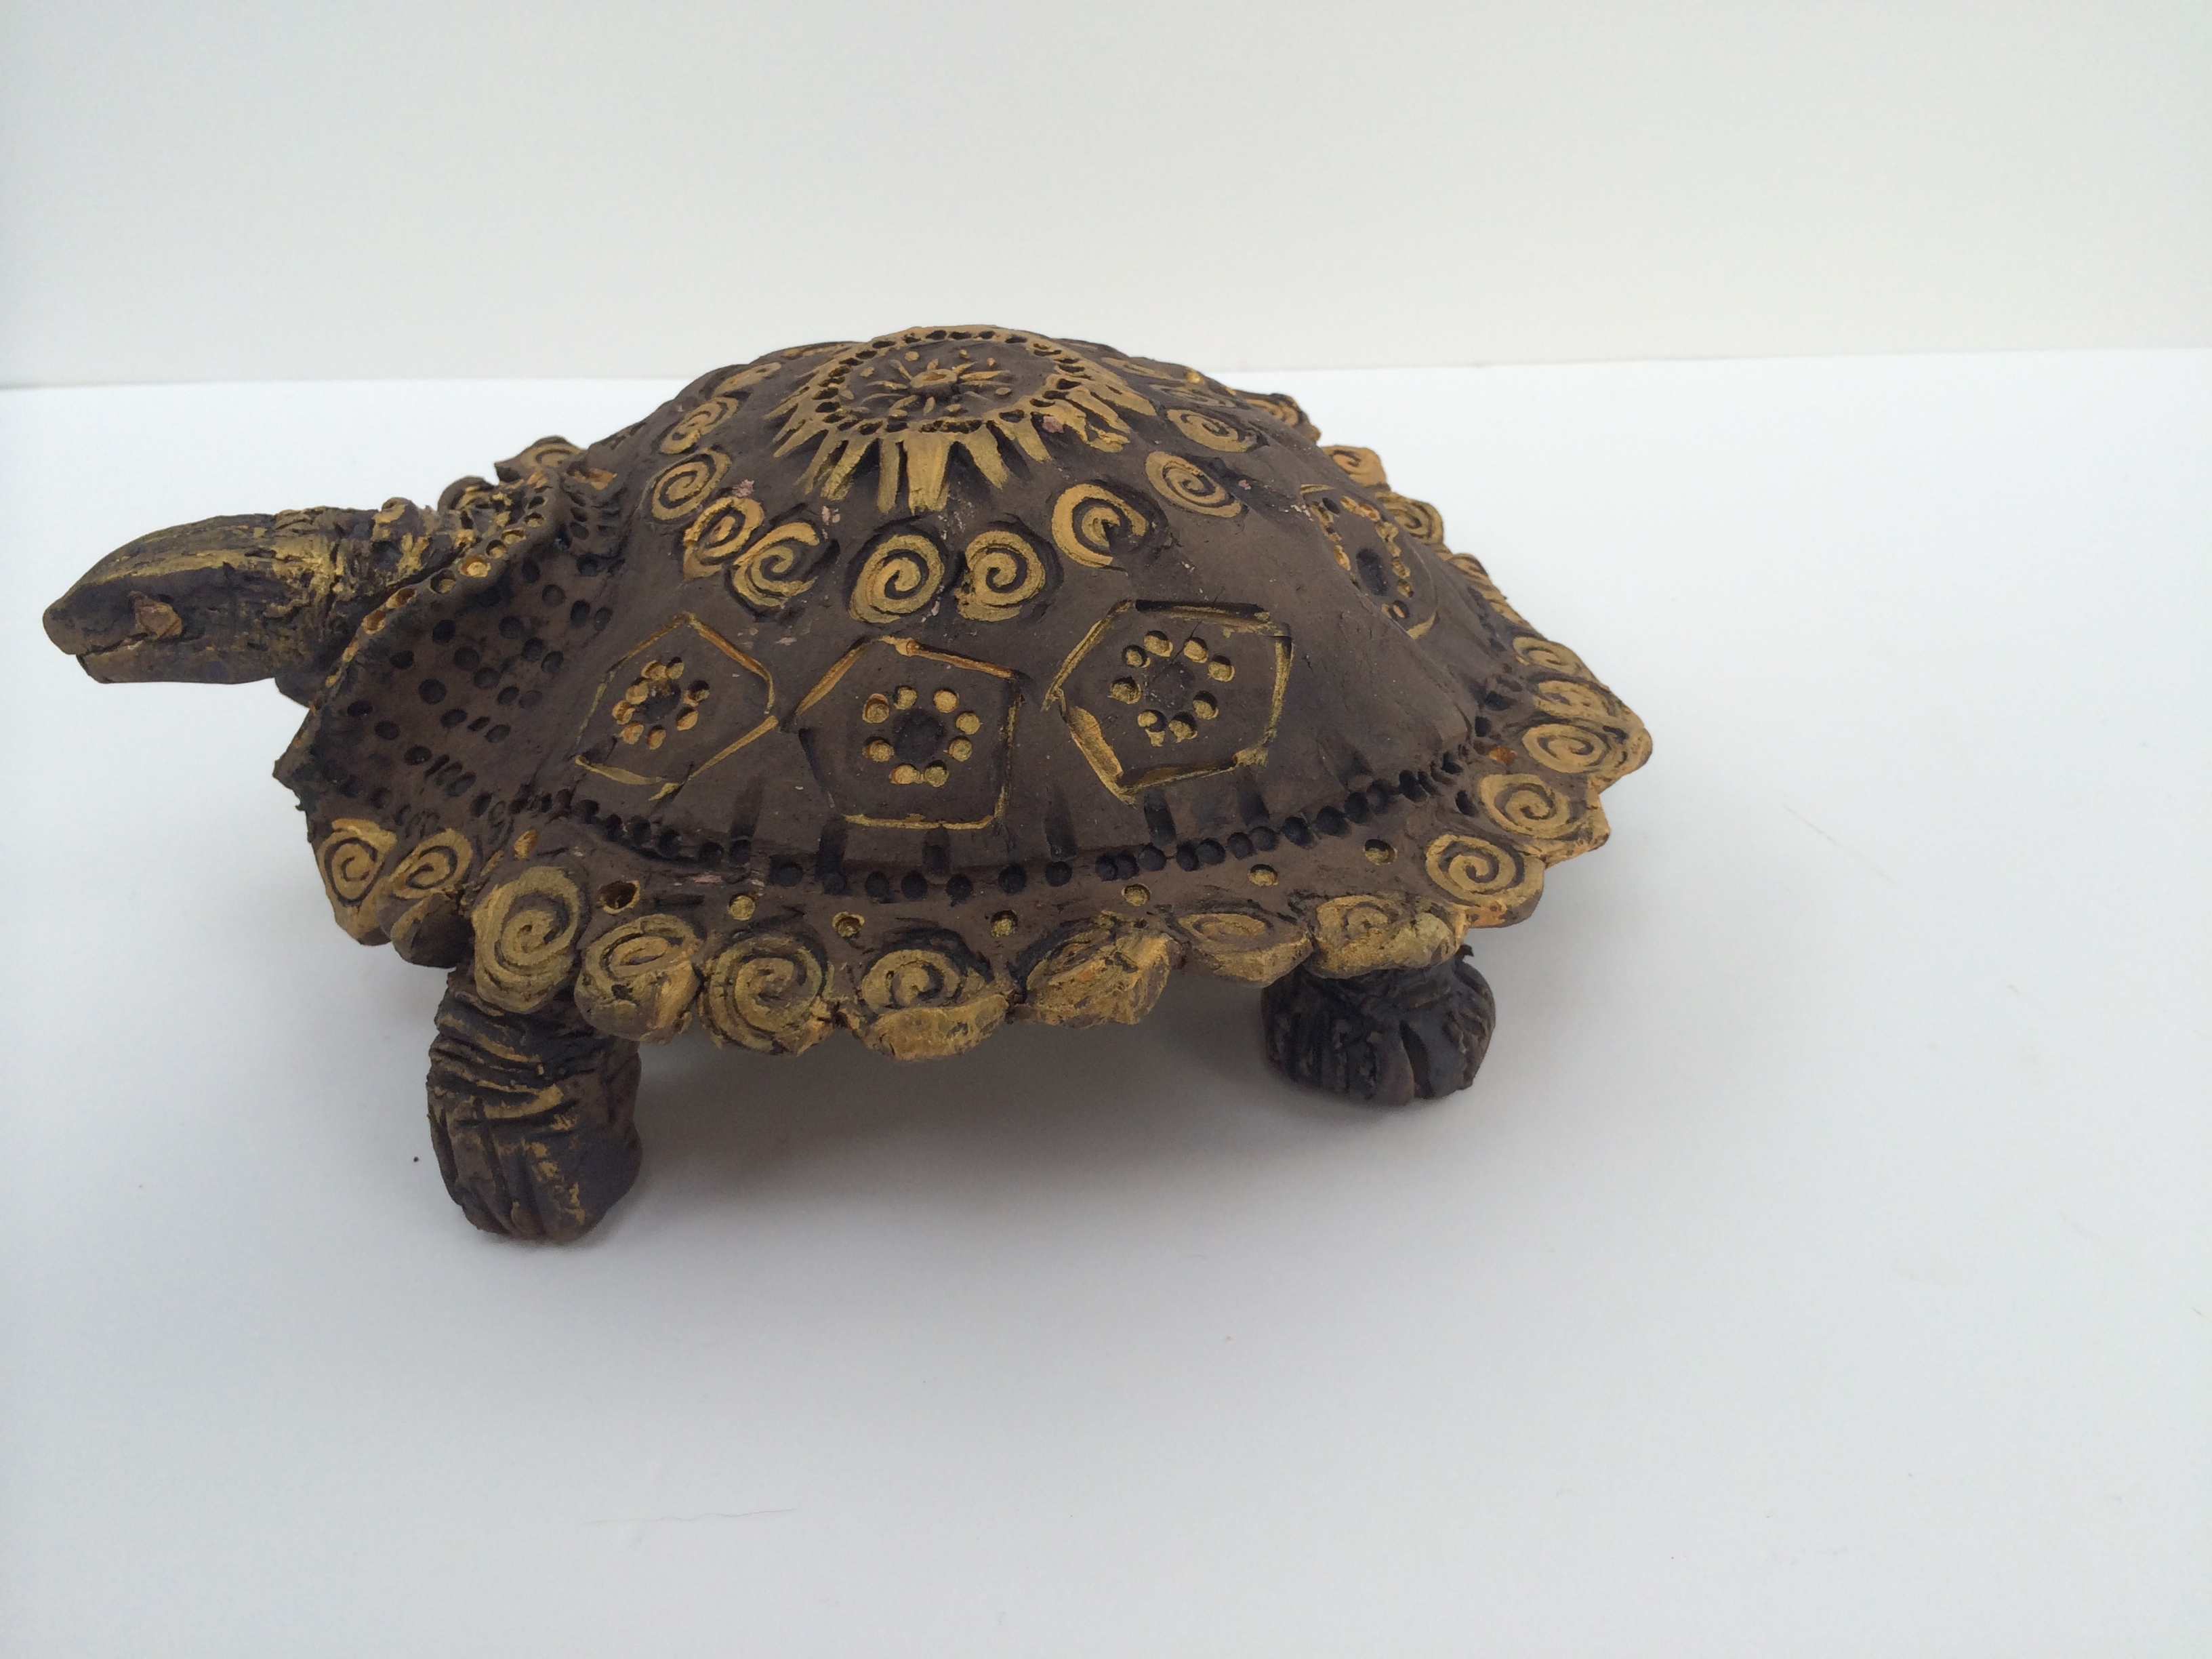 turtle sculpture